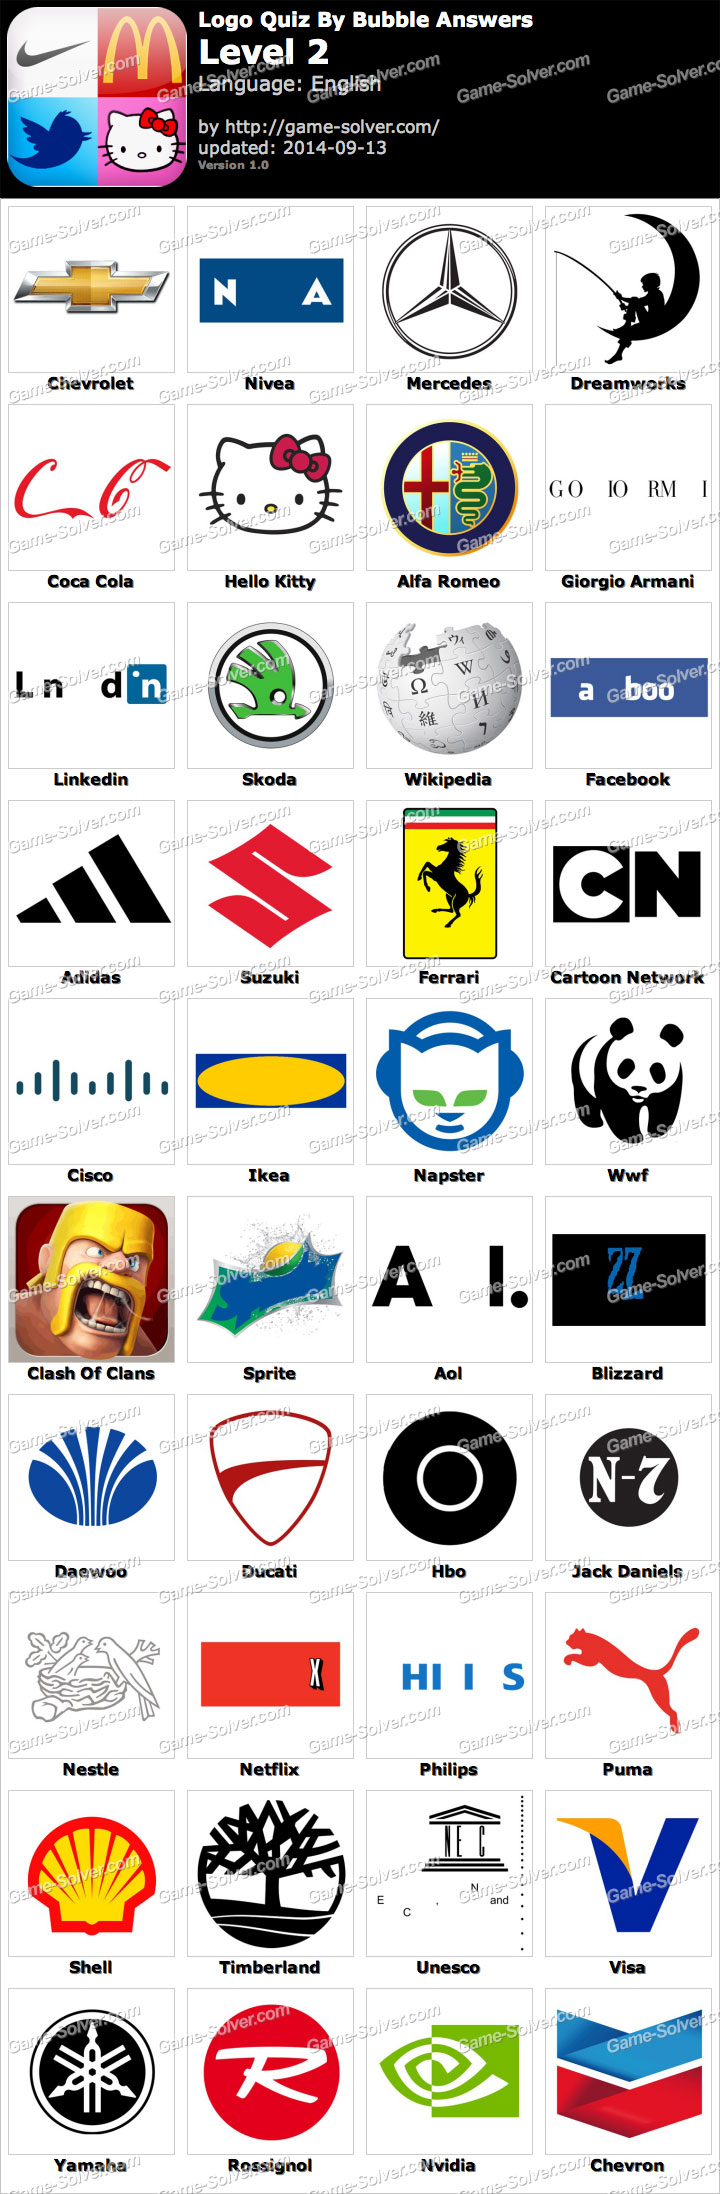 Image Gallery internet multinational company logo